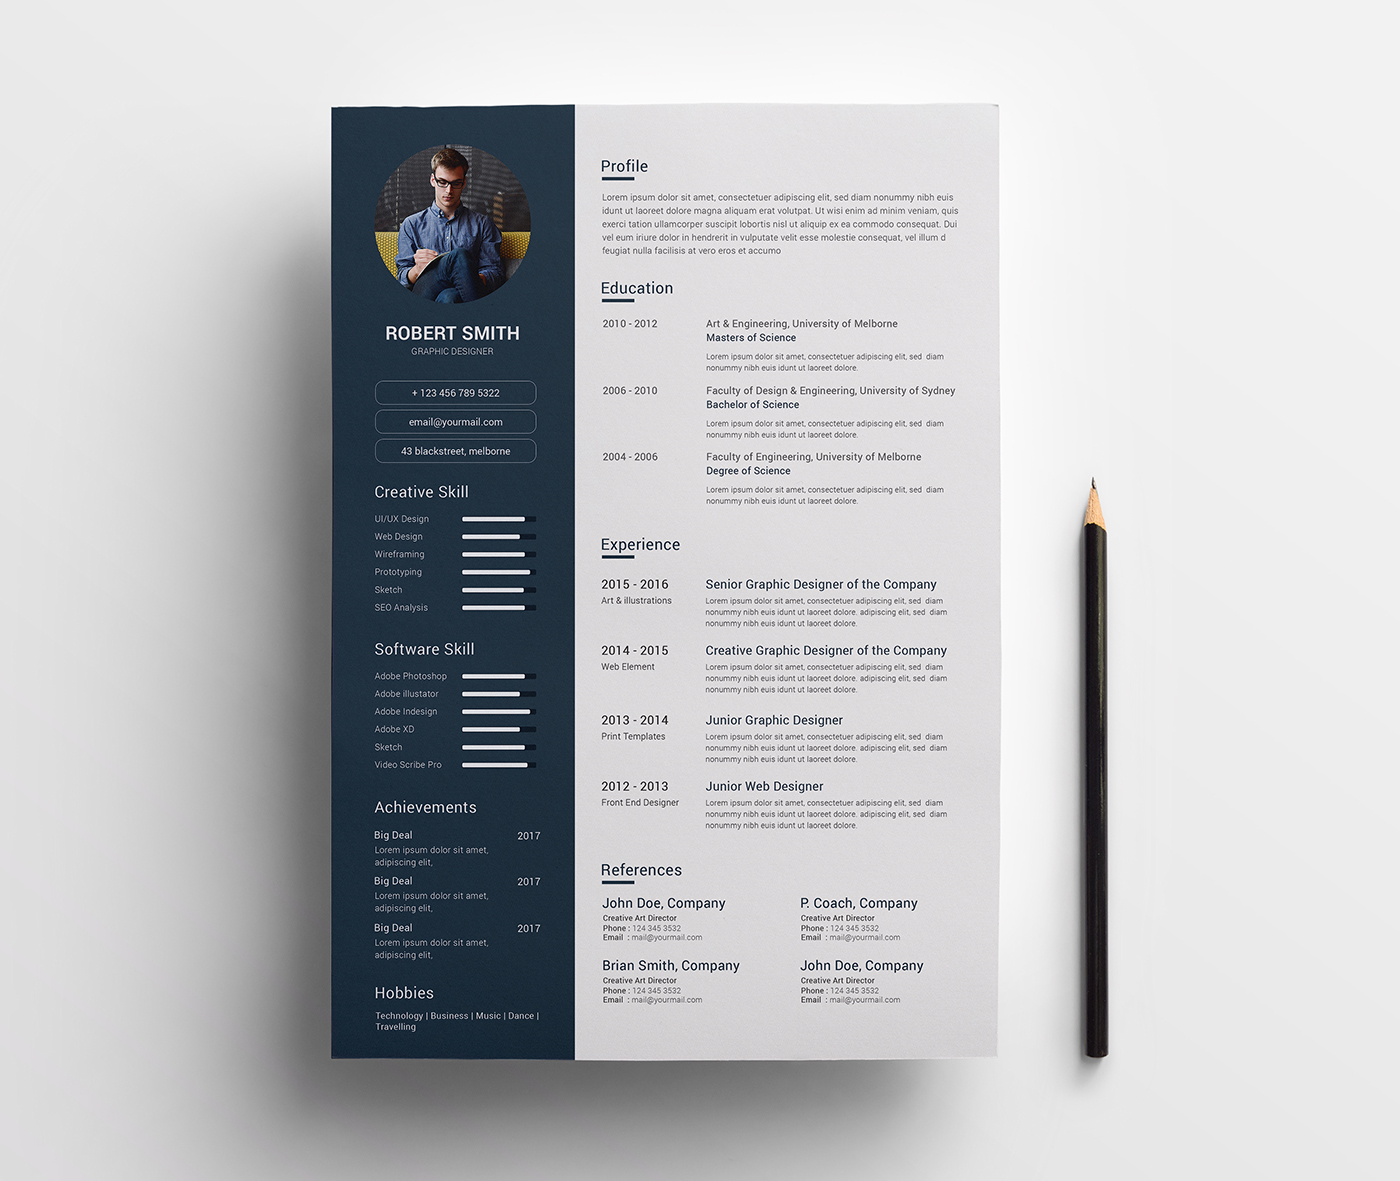 Robert Smith - Graphic Designer Resume Template #67689